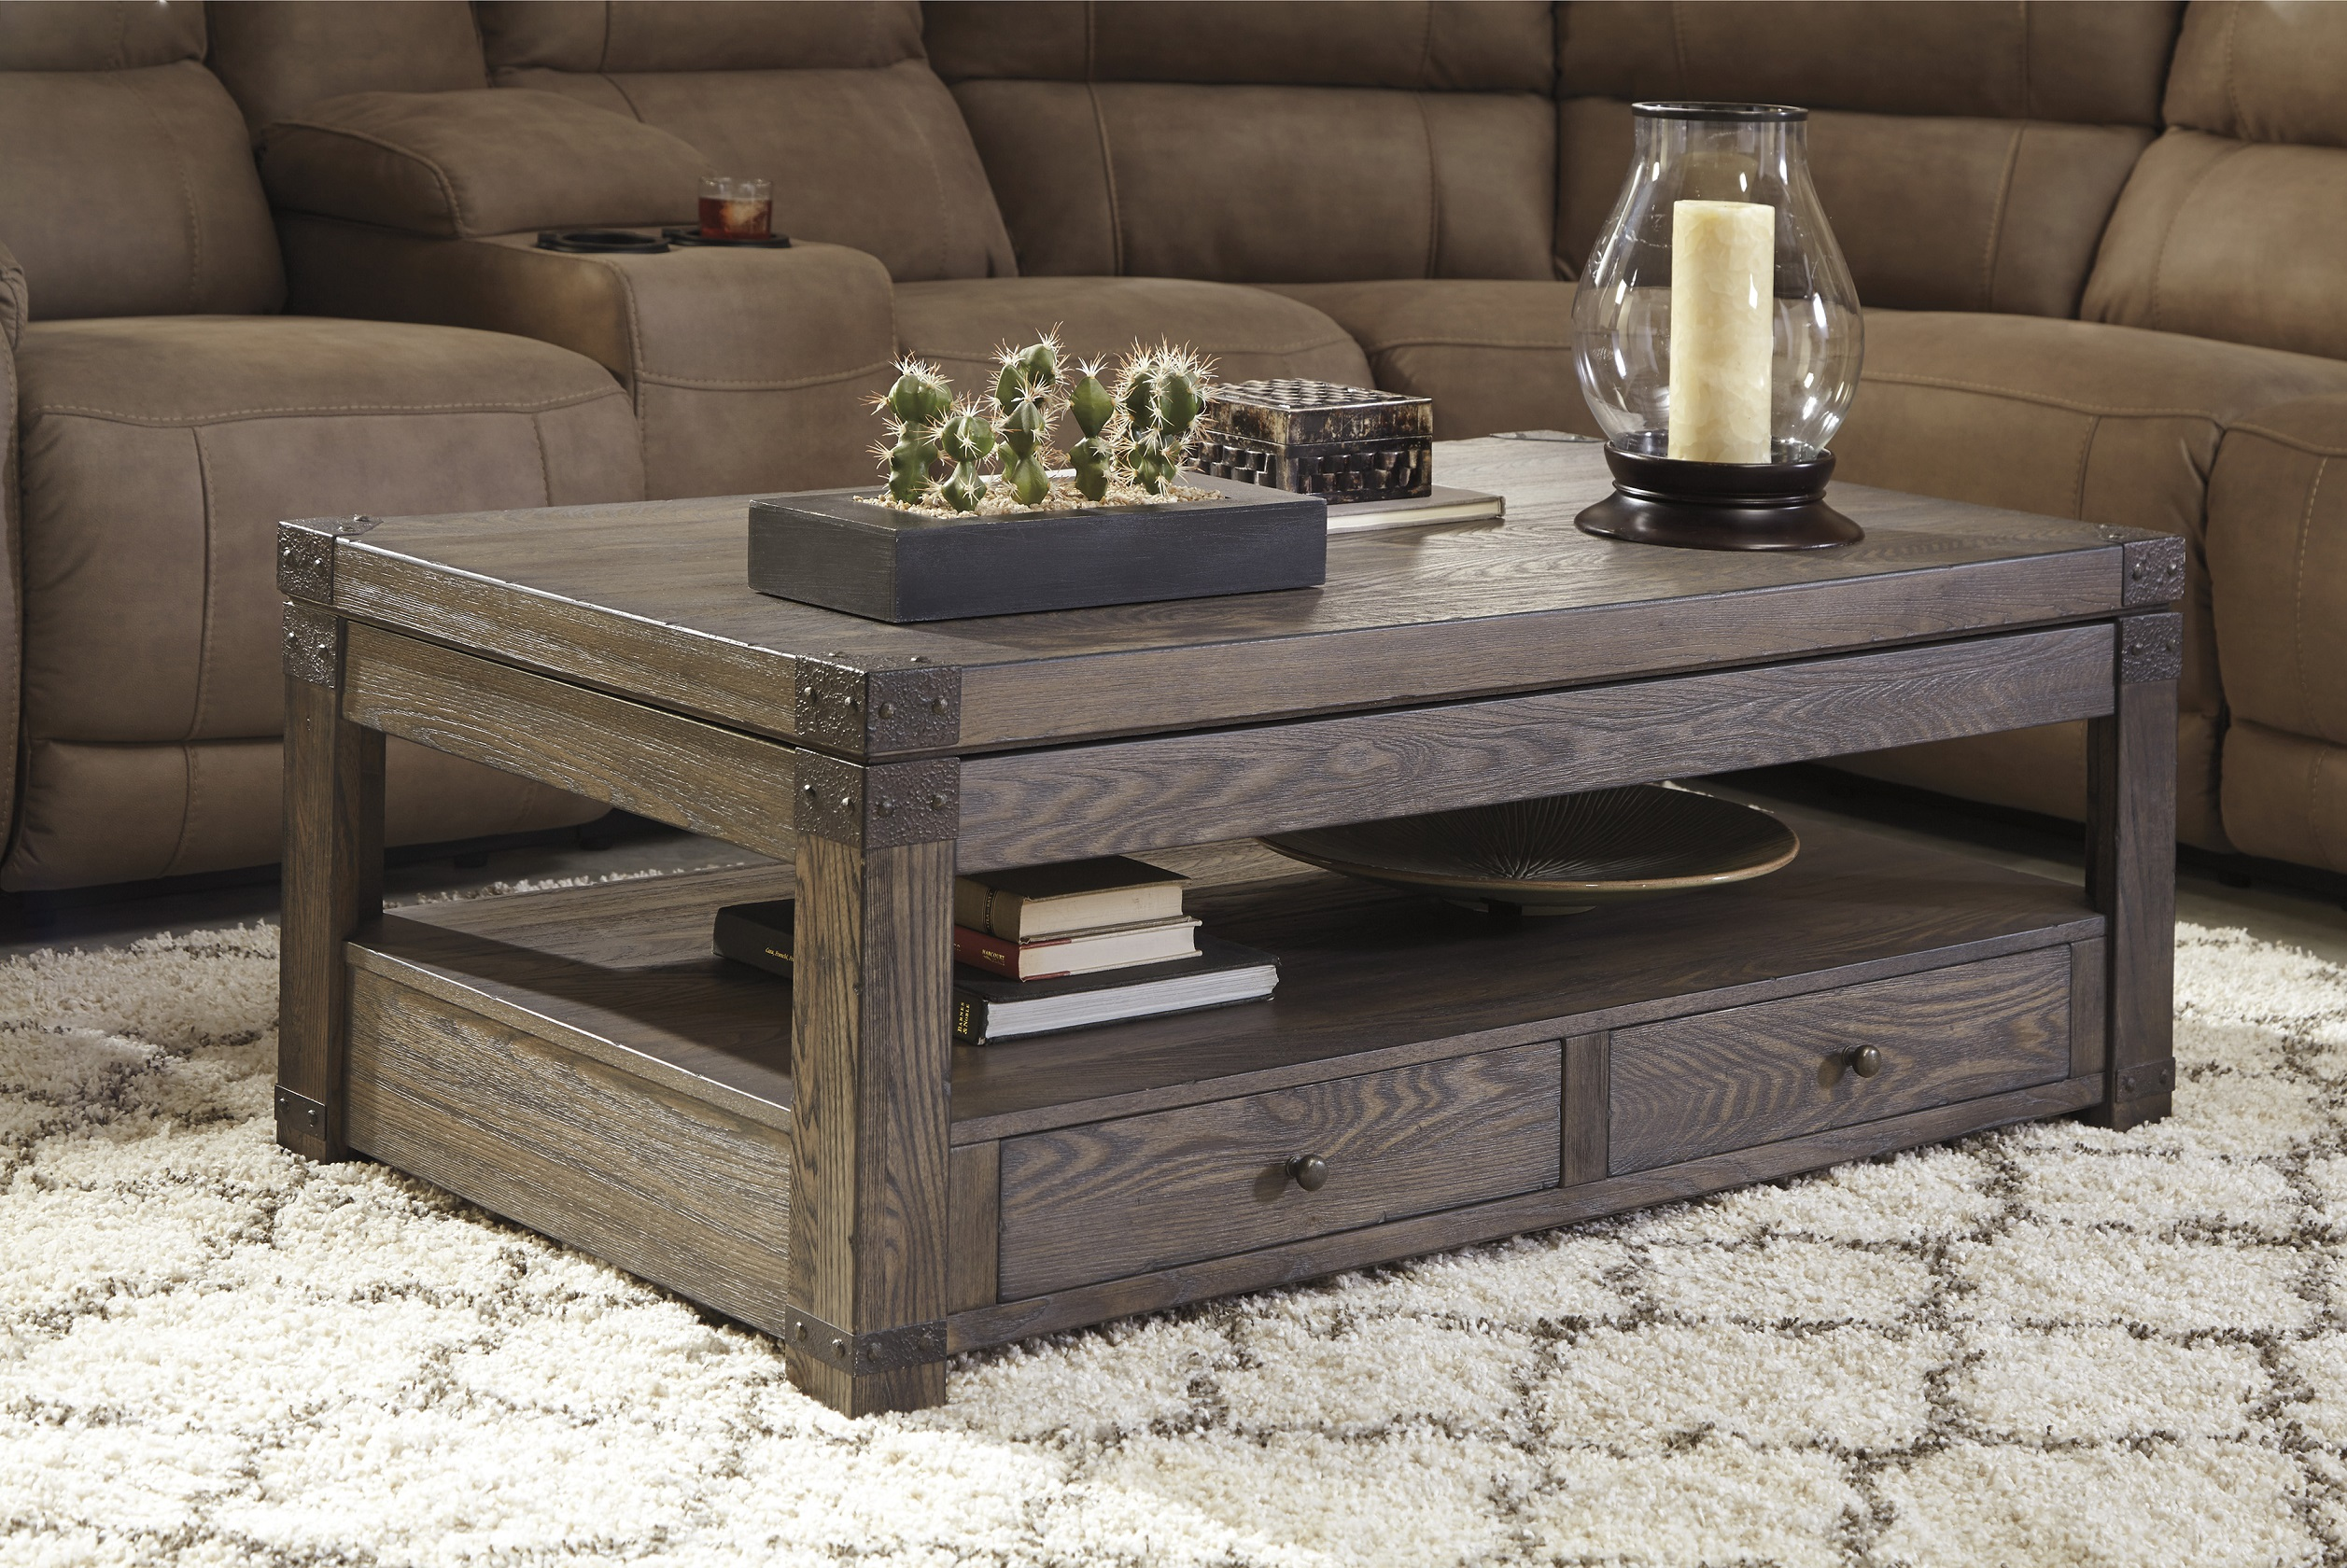 Burladen T846 Lift Top Coffee Table By Ashley Furniture Trunk Style W